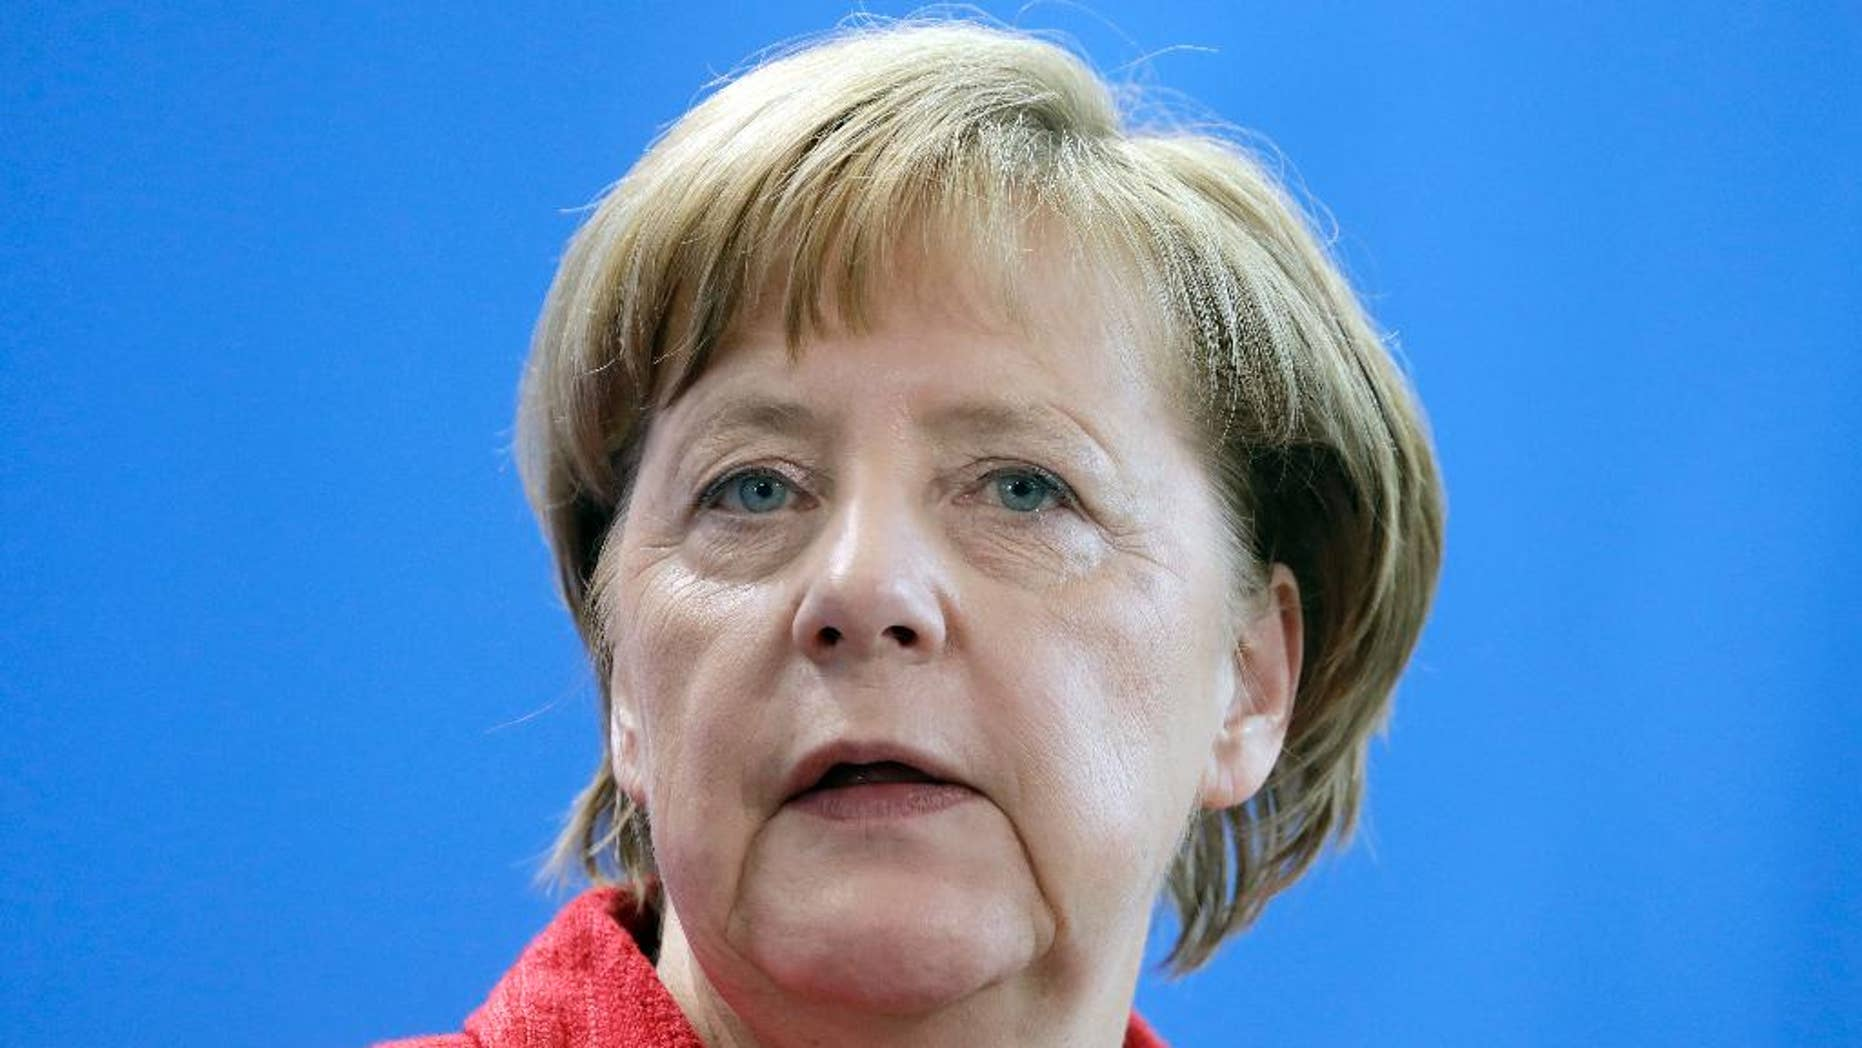 German Chancellor Angela Merkel addresses the media during a joint press conference as part of a meeting with NATO Secretary General Jens Stoltenberg at the chancellery in Berlin, Germany, Thursday, May 11, 2017. (AP Photo/Michael Sohn)